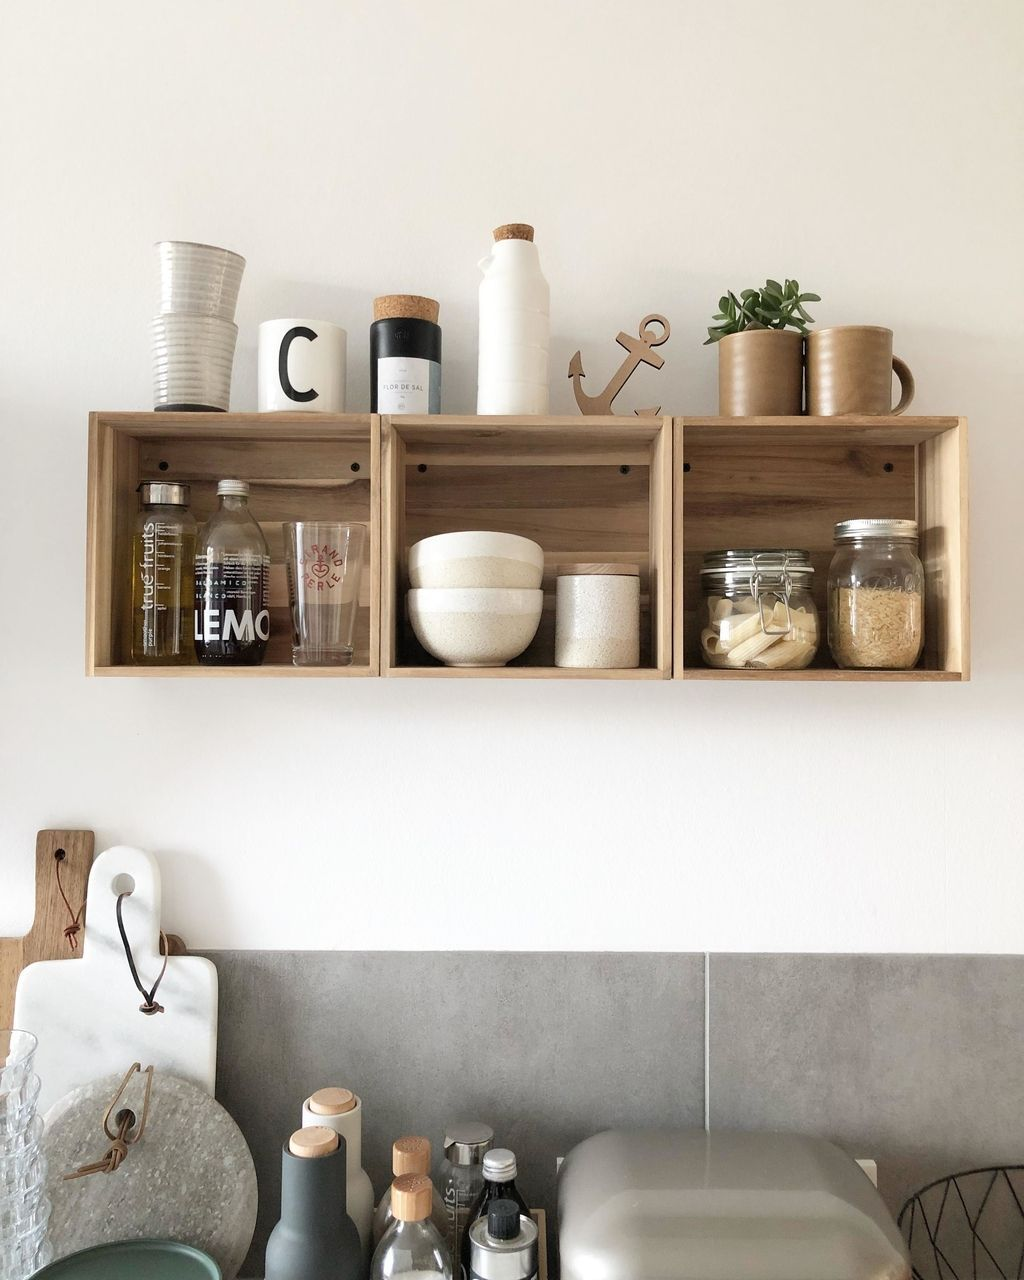 Diy Küchenregal Kchenregalliebe #küchenregal #einzelstcken #kitcheninspo #kistenregal #ikeahacks #wandregal #interior #ikeah… | Popular Kitchen Designs, Ikea Hack, Kitchen Shelves